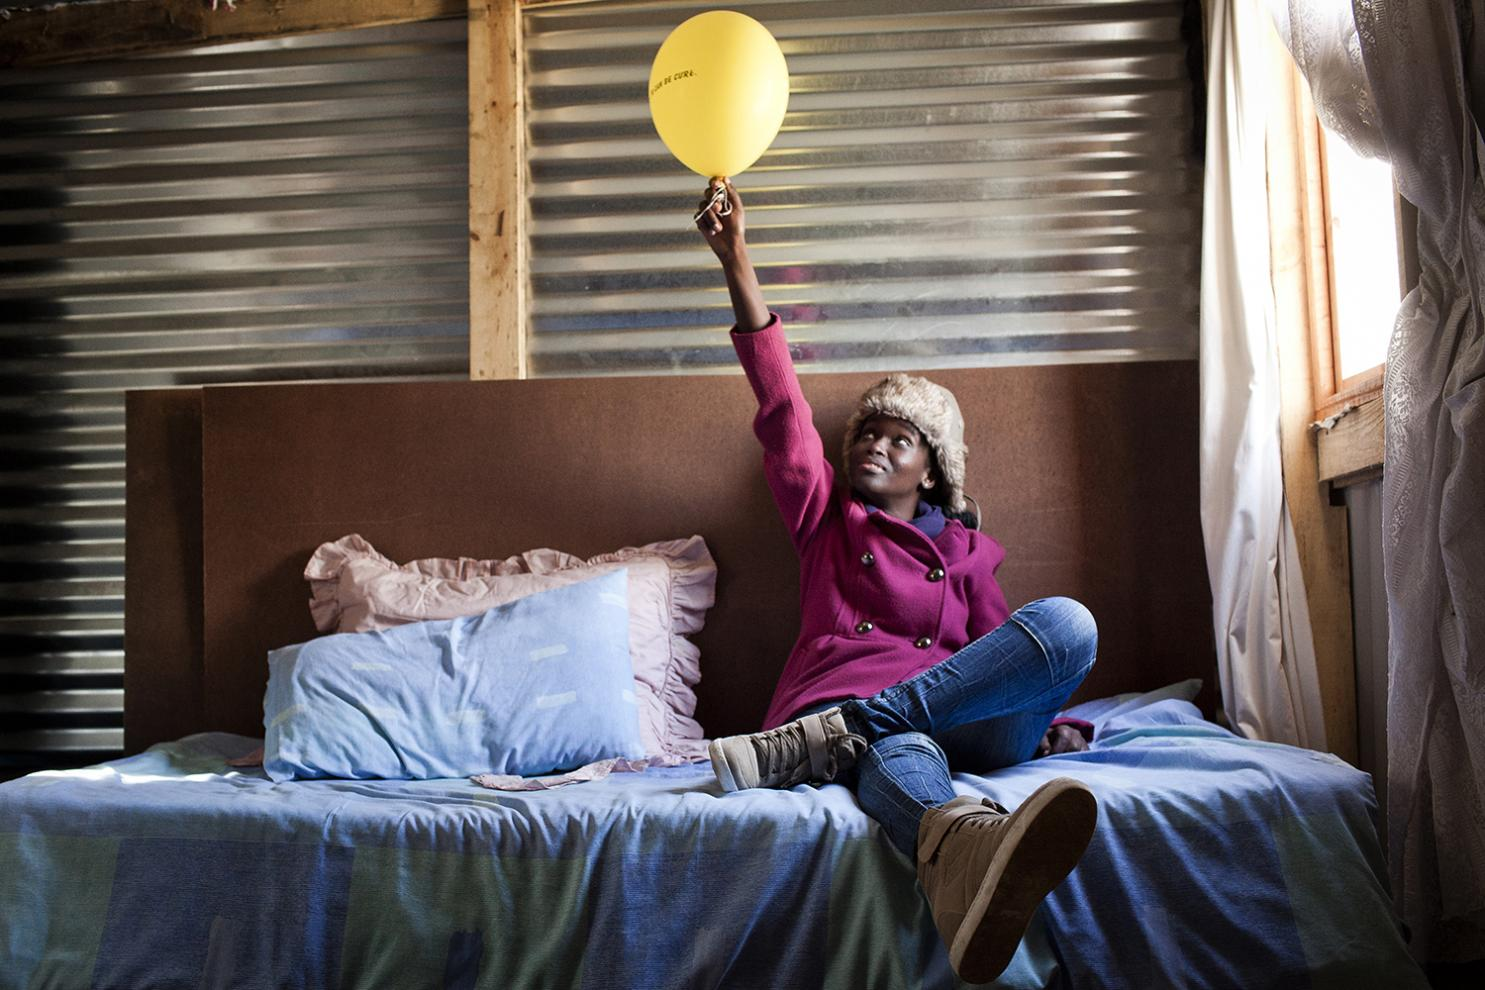 Phumeza Tisile, 23 years, at her home in Khayelitsha, South Africa on August 16, 2013, the day she celebrated her cure from XDR-TB